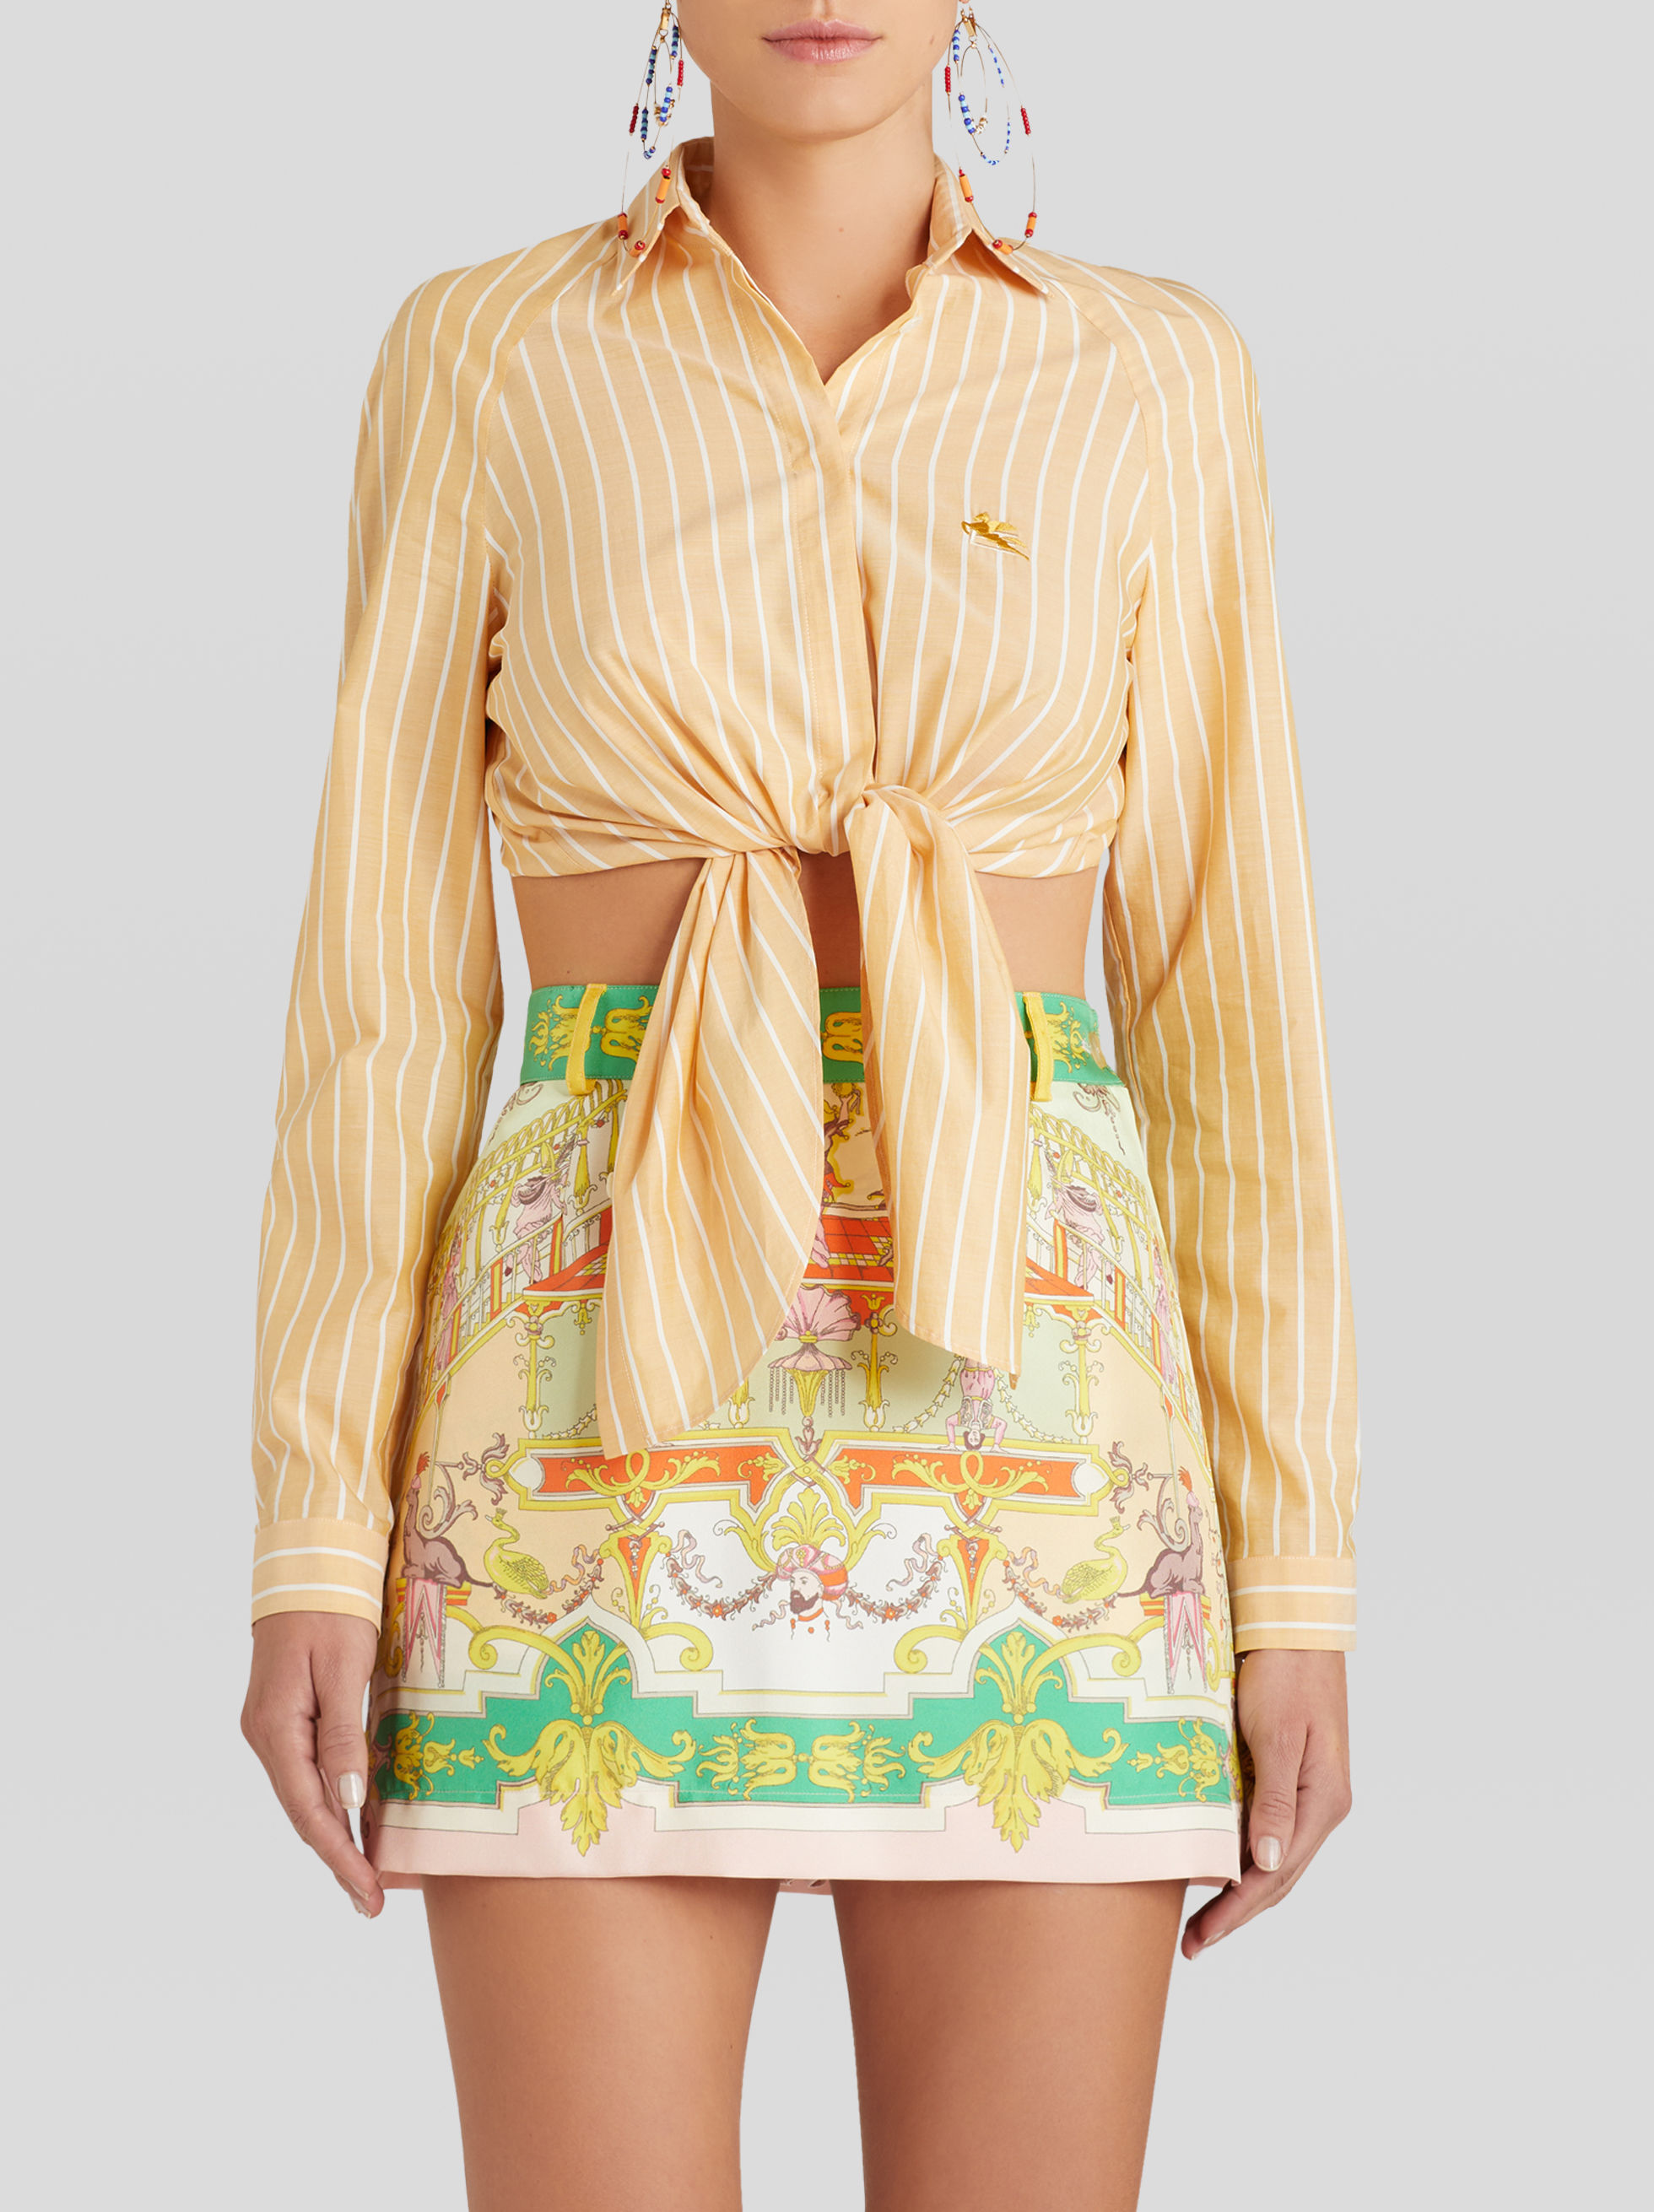 STRIPED TOP WITH EMBROIDERED PEGASO